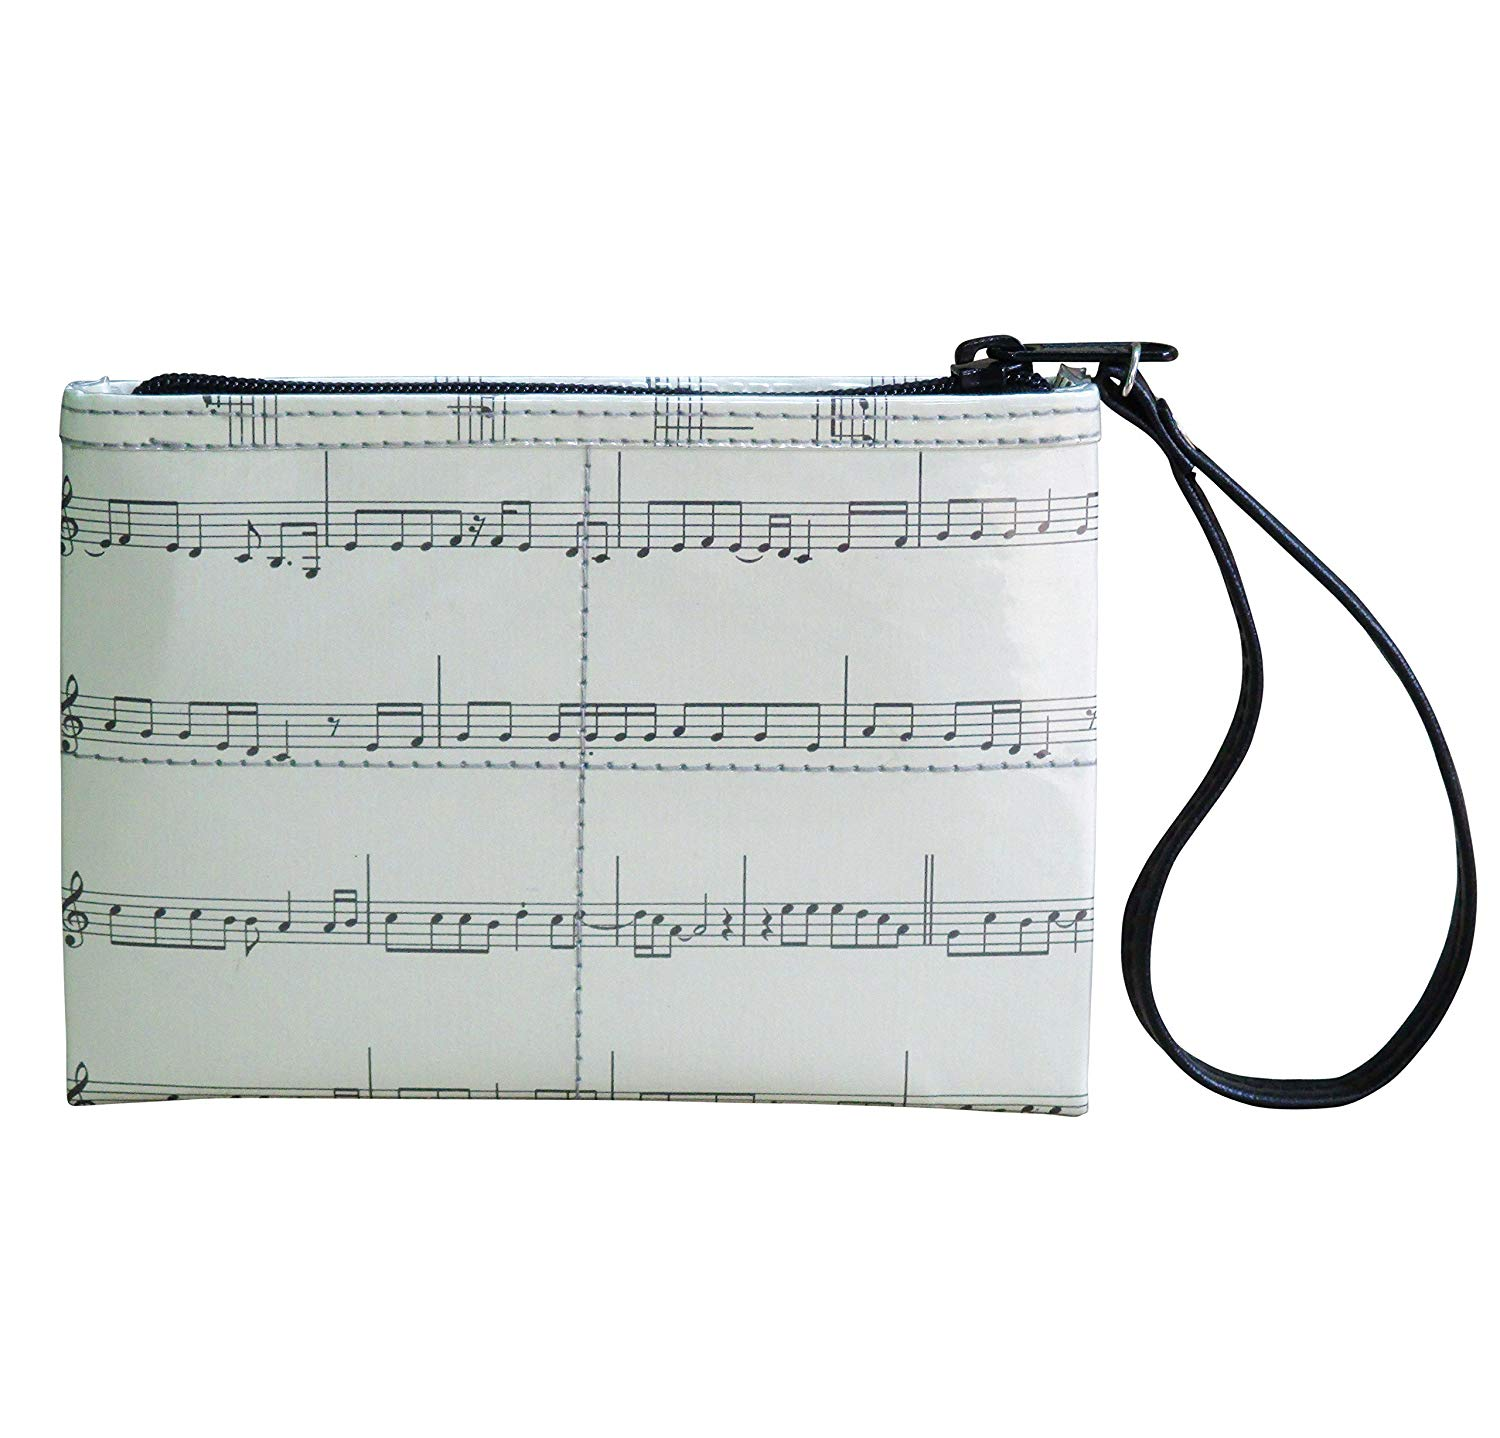 Small wristlet using musical note sheet - FREE SHIPPING, upcycled eco friendly vegan style recycled made from reclaimed repurposed materials handmade bag gift gifts pouch makeup case music scores